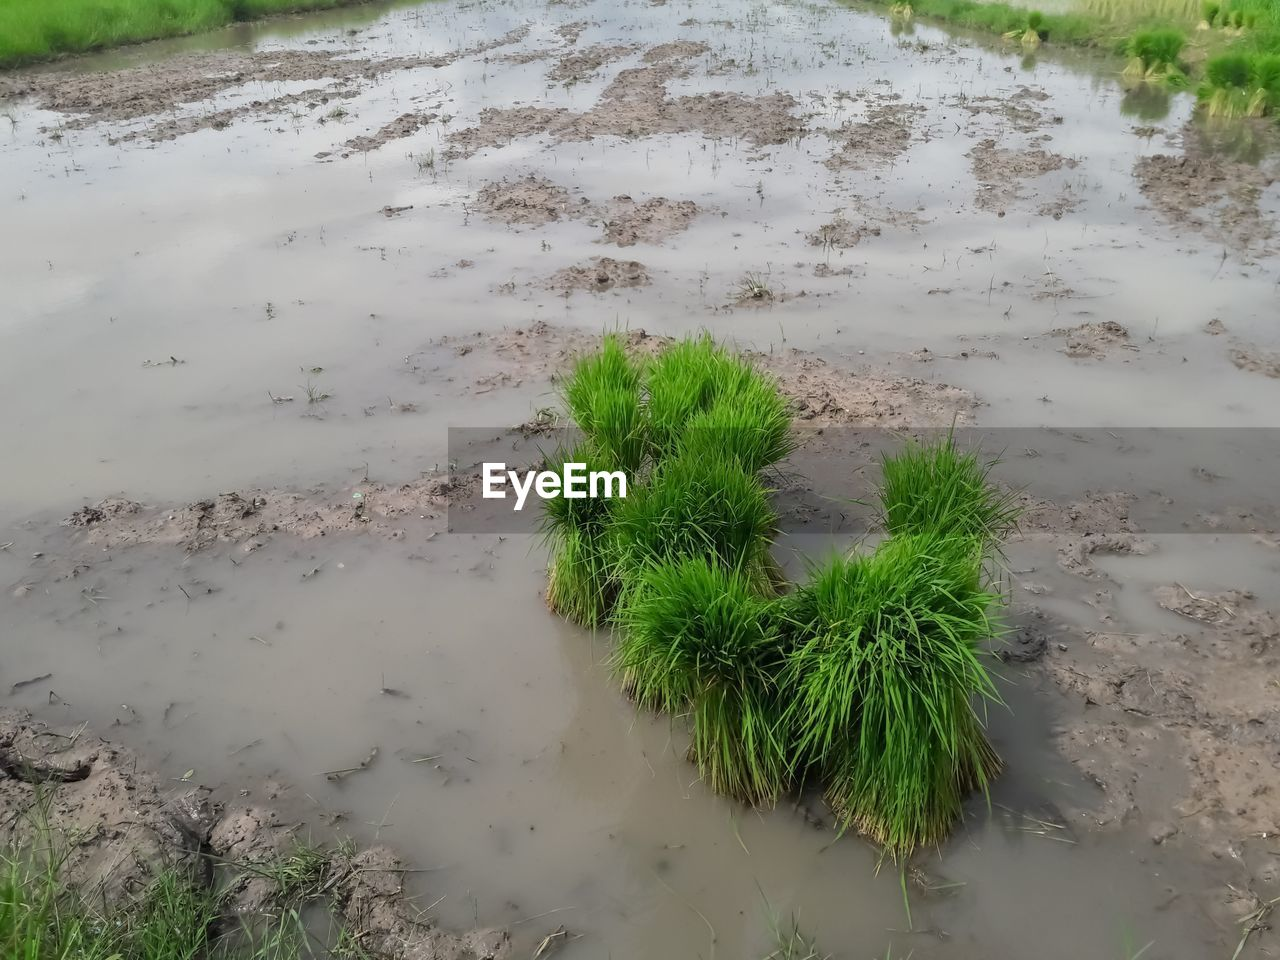 plant, growth, nature, day, green color, water, no people, high angle view, tranquility, land, outdoors, grass, beauty in nature, wet, field, scenics - nature, mud, tranquil scene, landscape